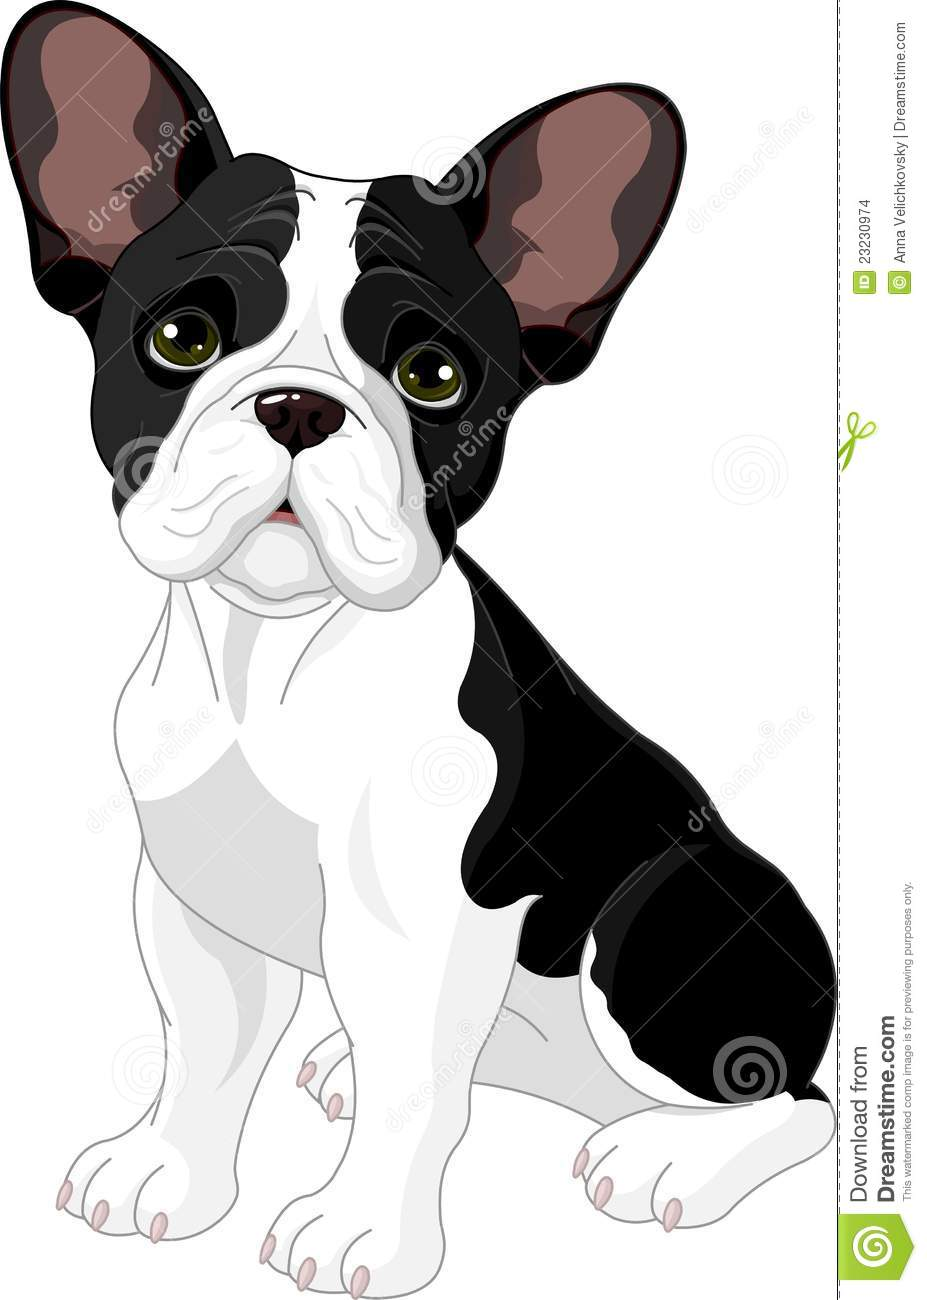 Cute Frenchie Wallpaper French Bulldog Stock Vector Image Of Themes Cartoon